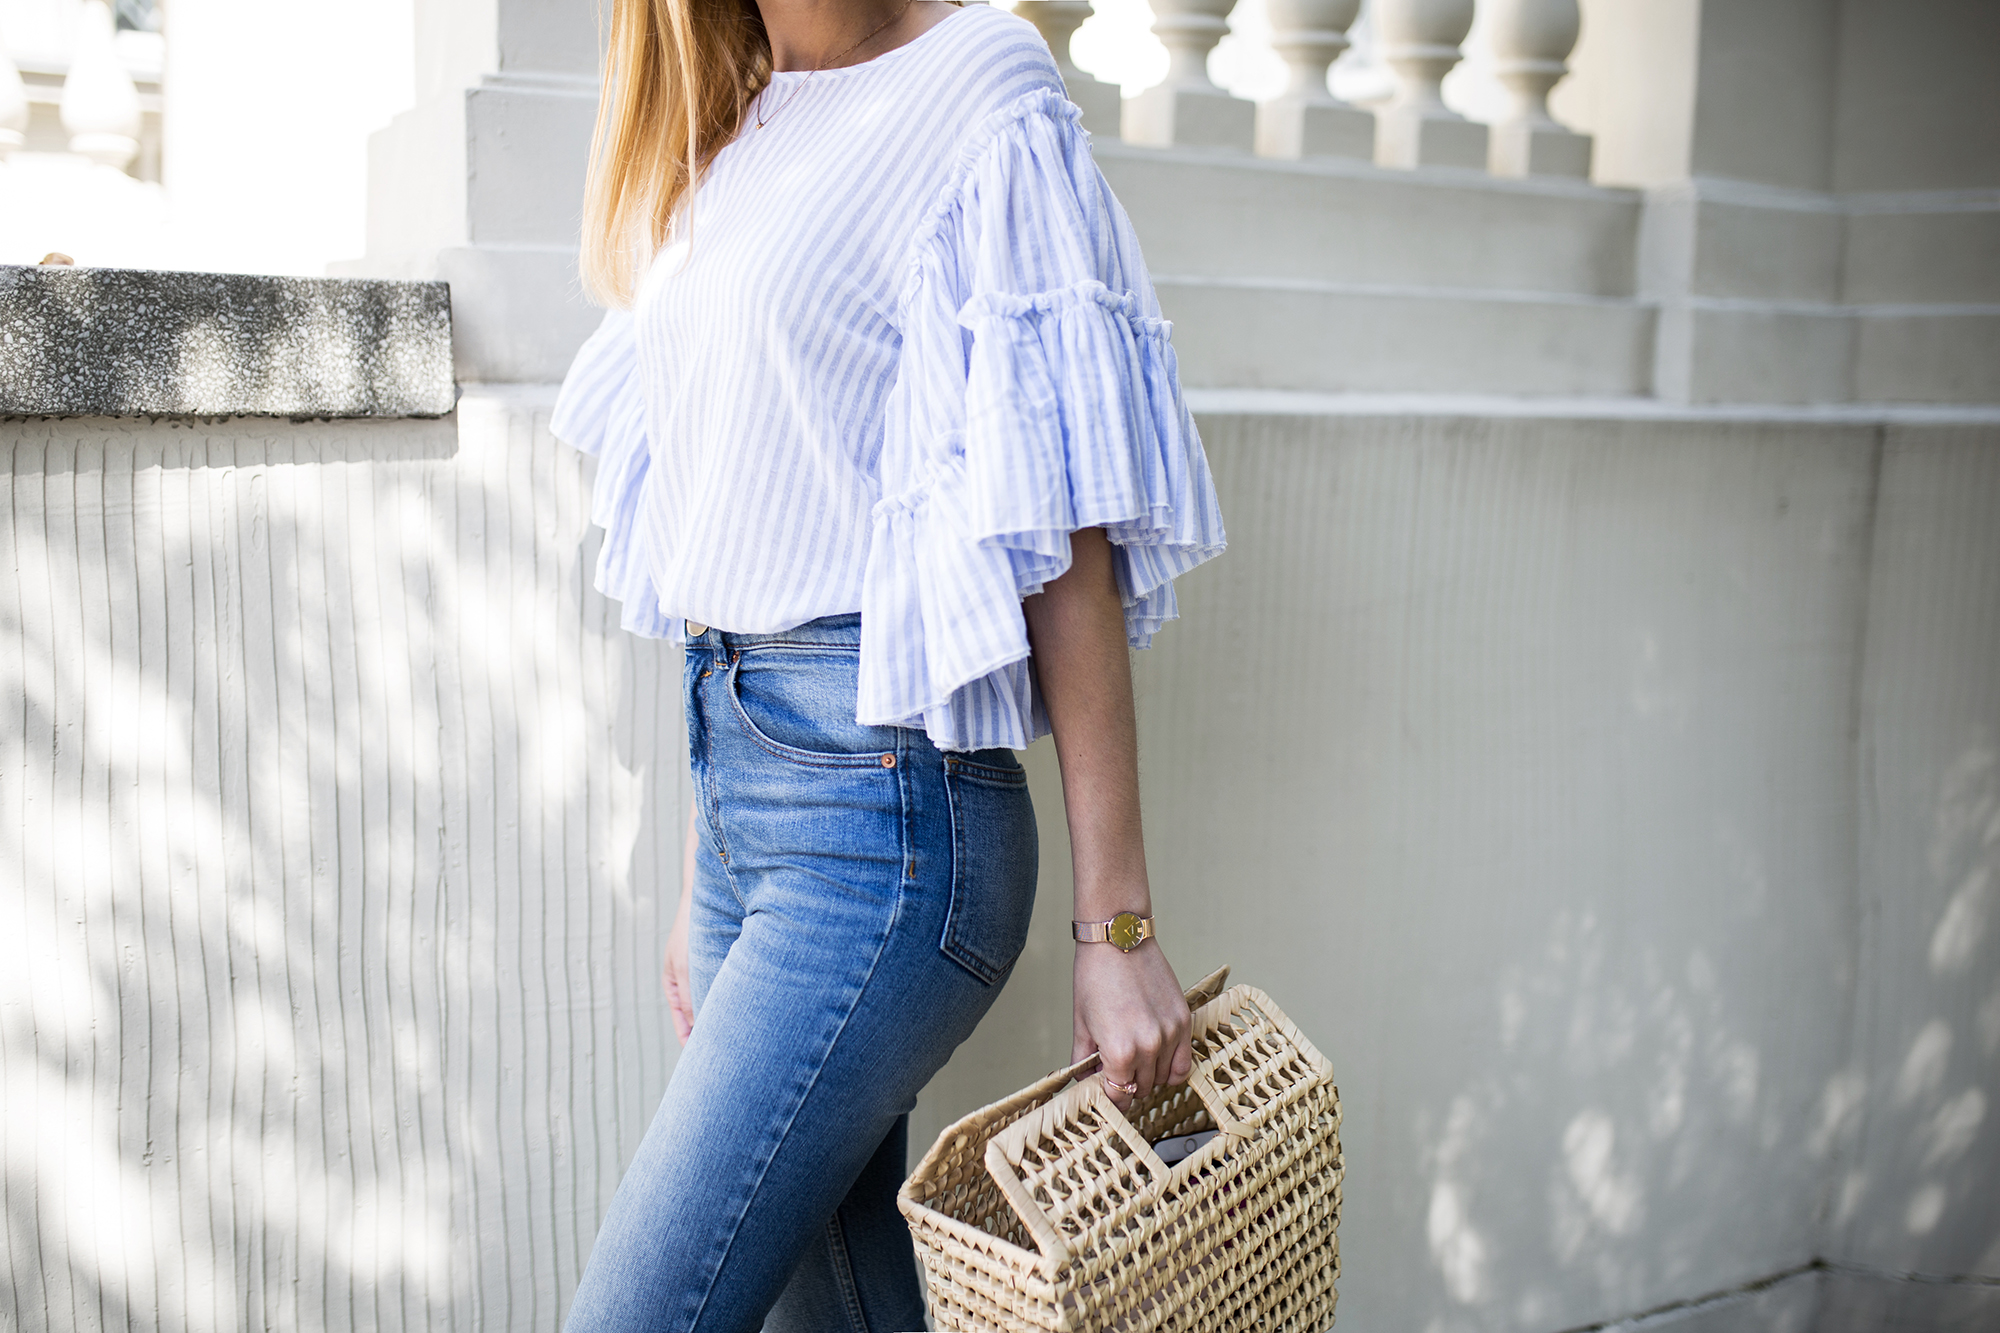 fashion-blogger-street-style-outfit-sripes-ruffles